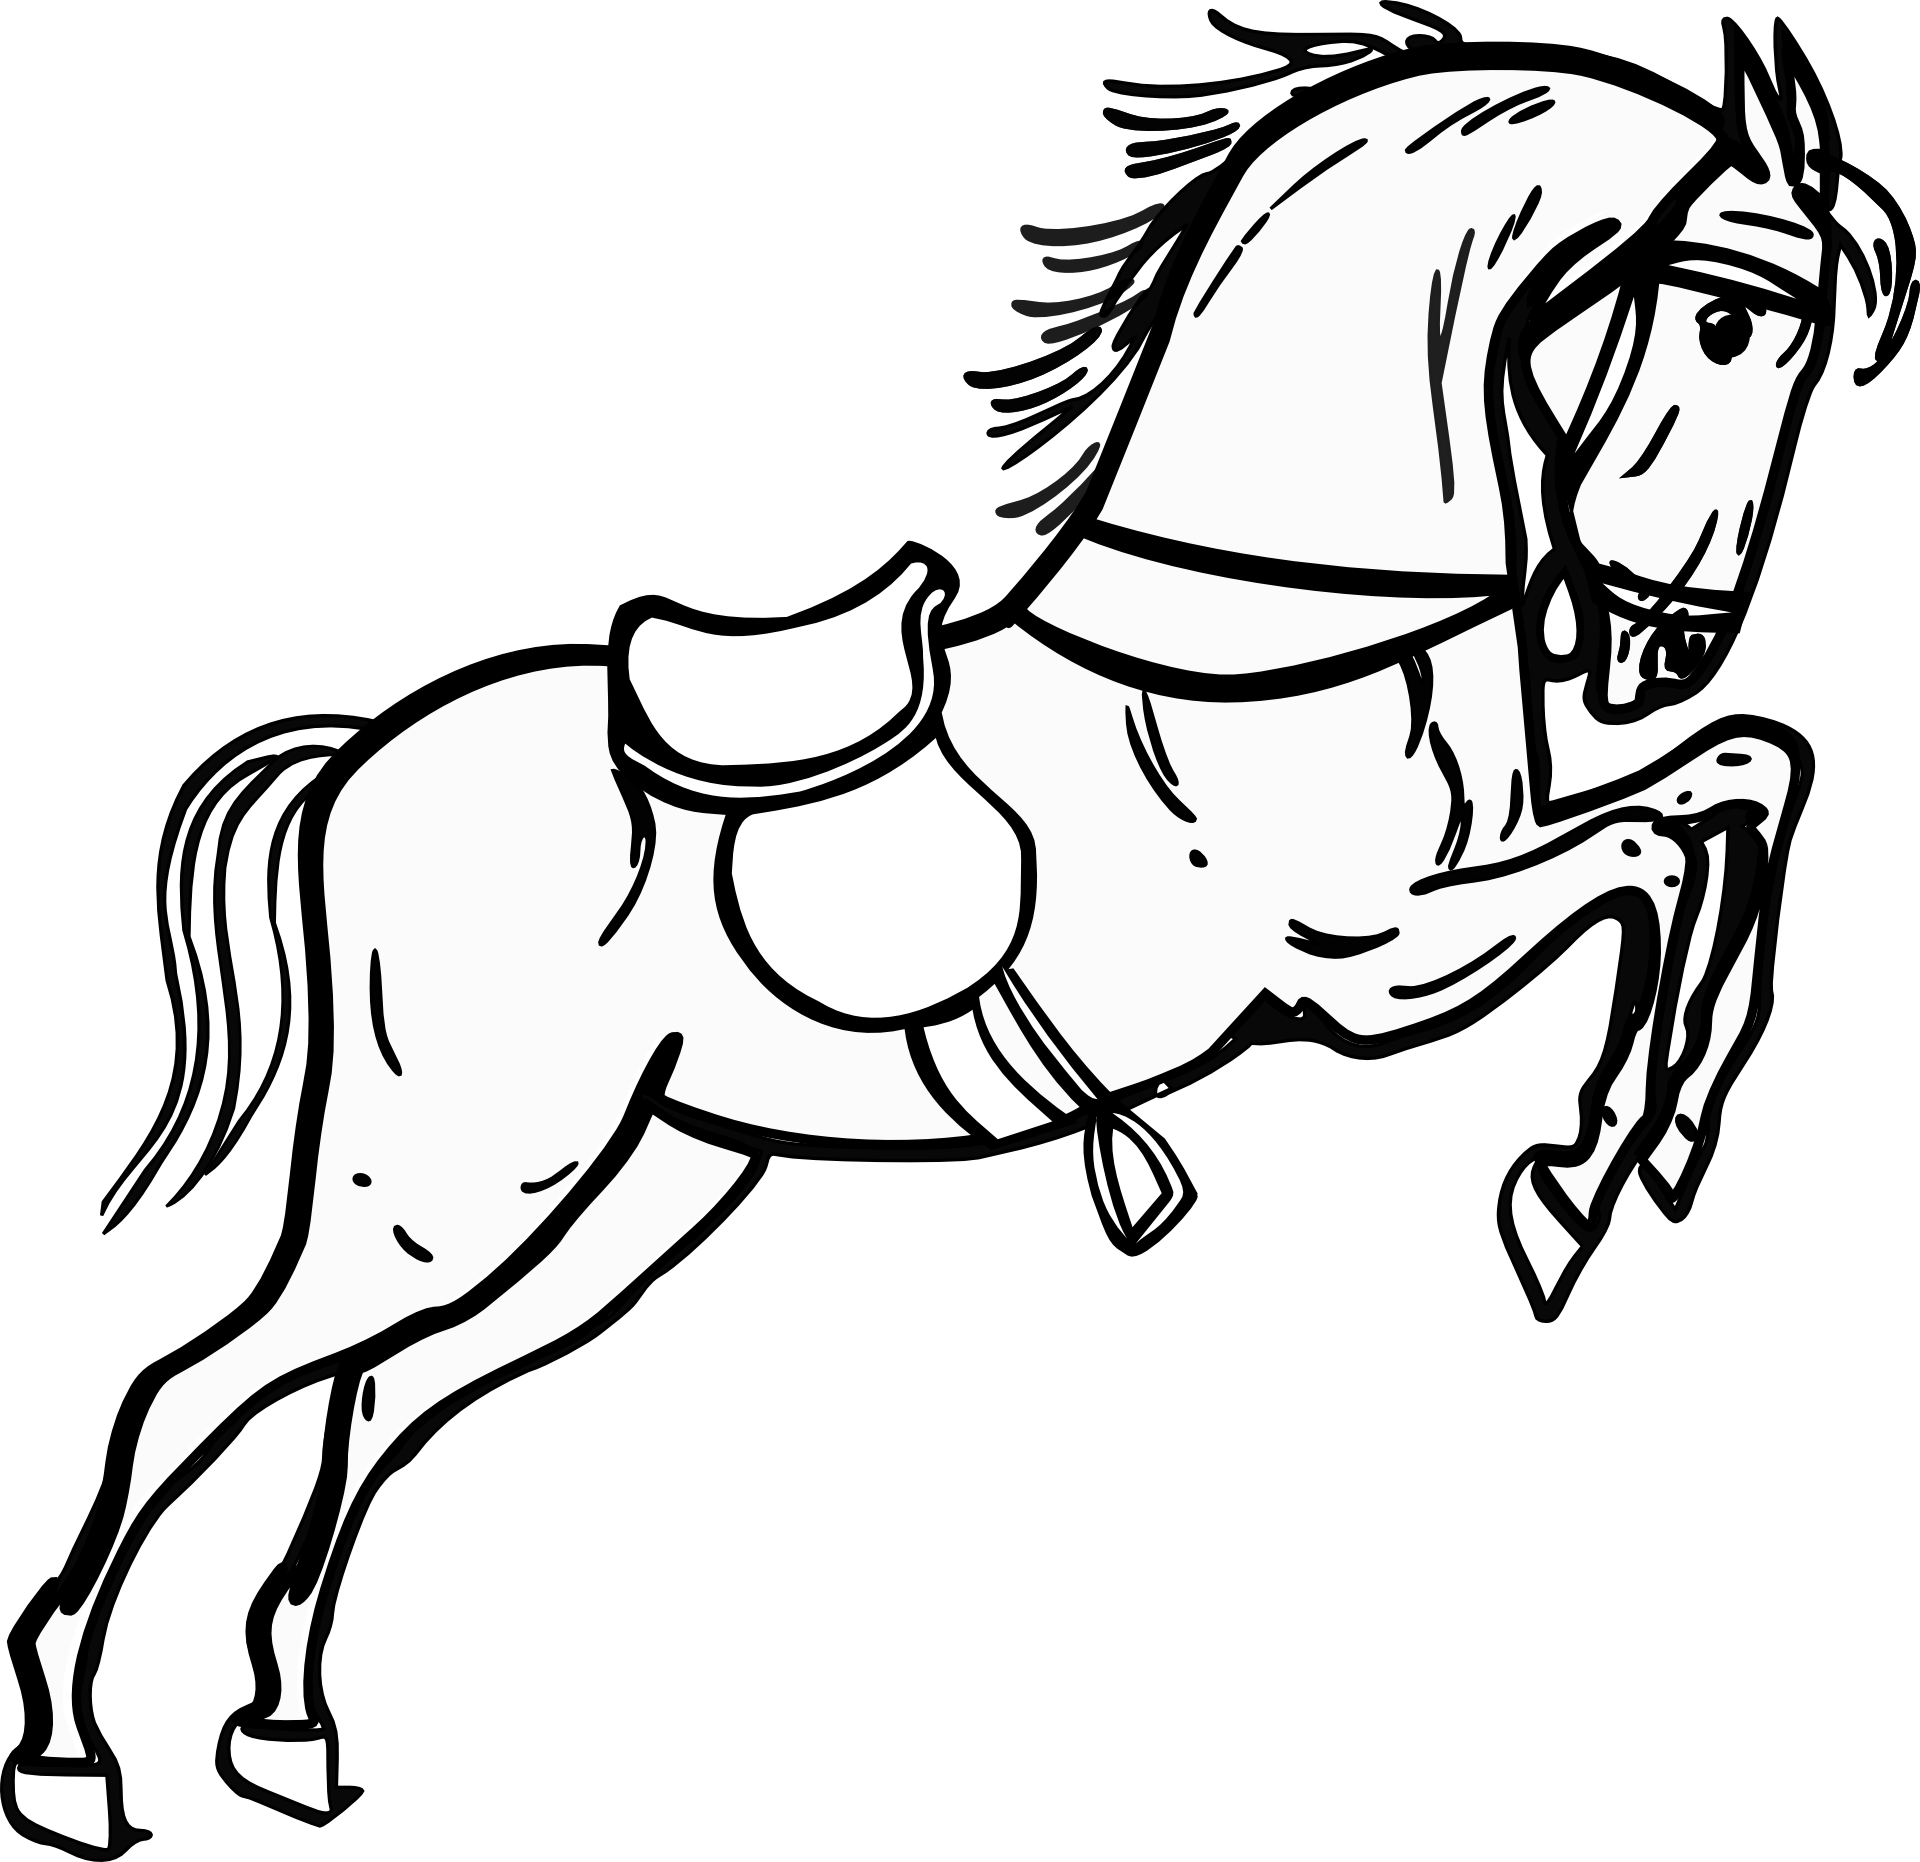 Black And White Graphic Image Of A Horse In A Jump Free Image